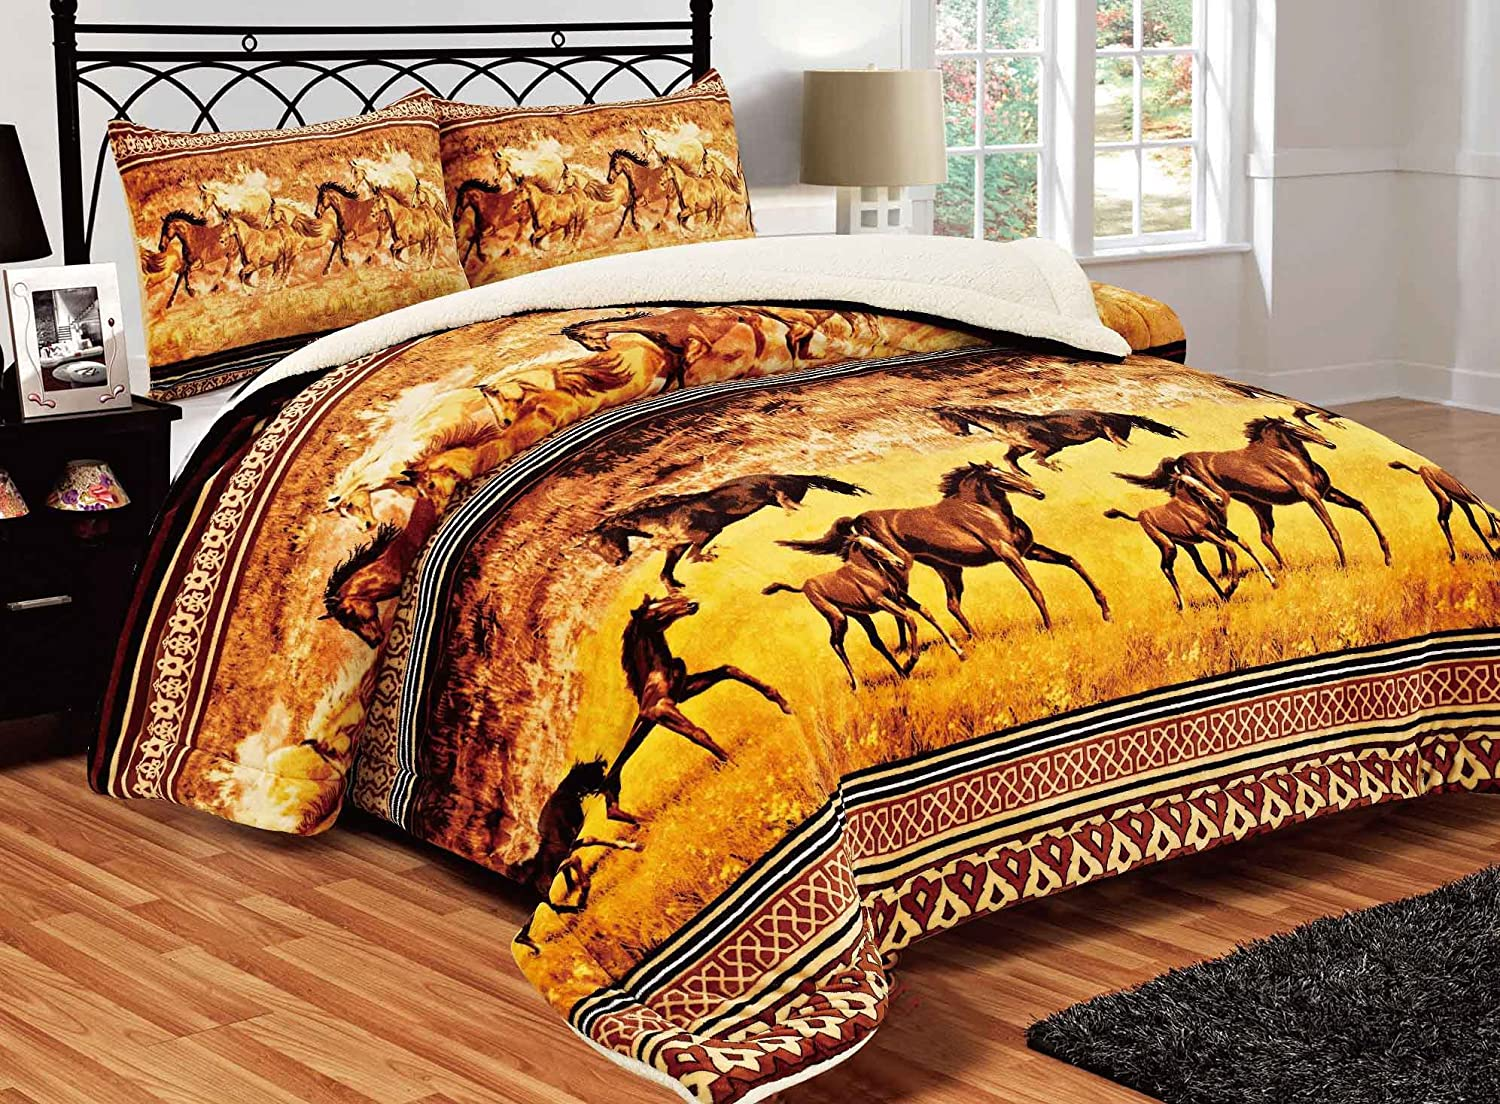 All American Collection New Super Soft and Warm 3 Piece Brown Horse Design Borrego/Sherpa Blanket Palazzo (Queen/King